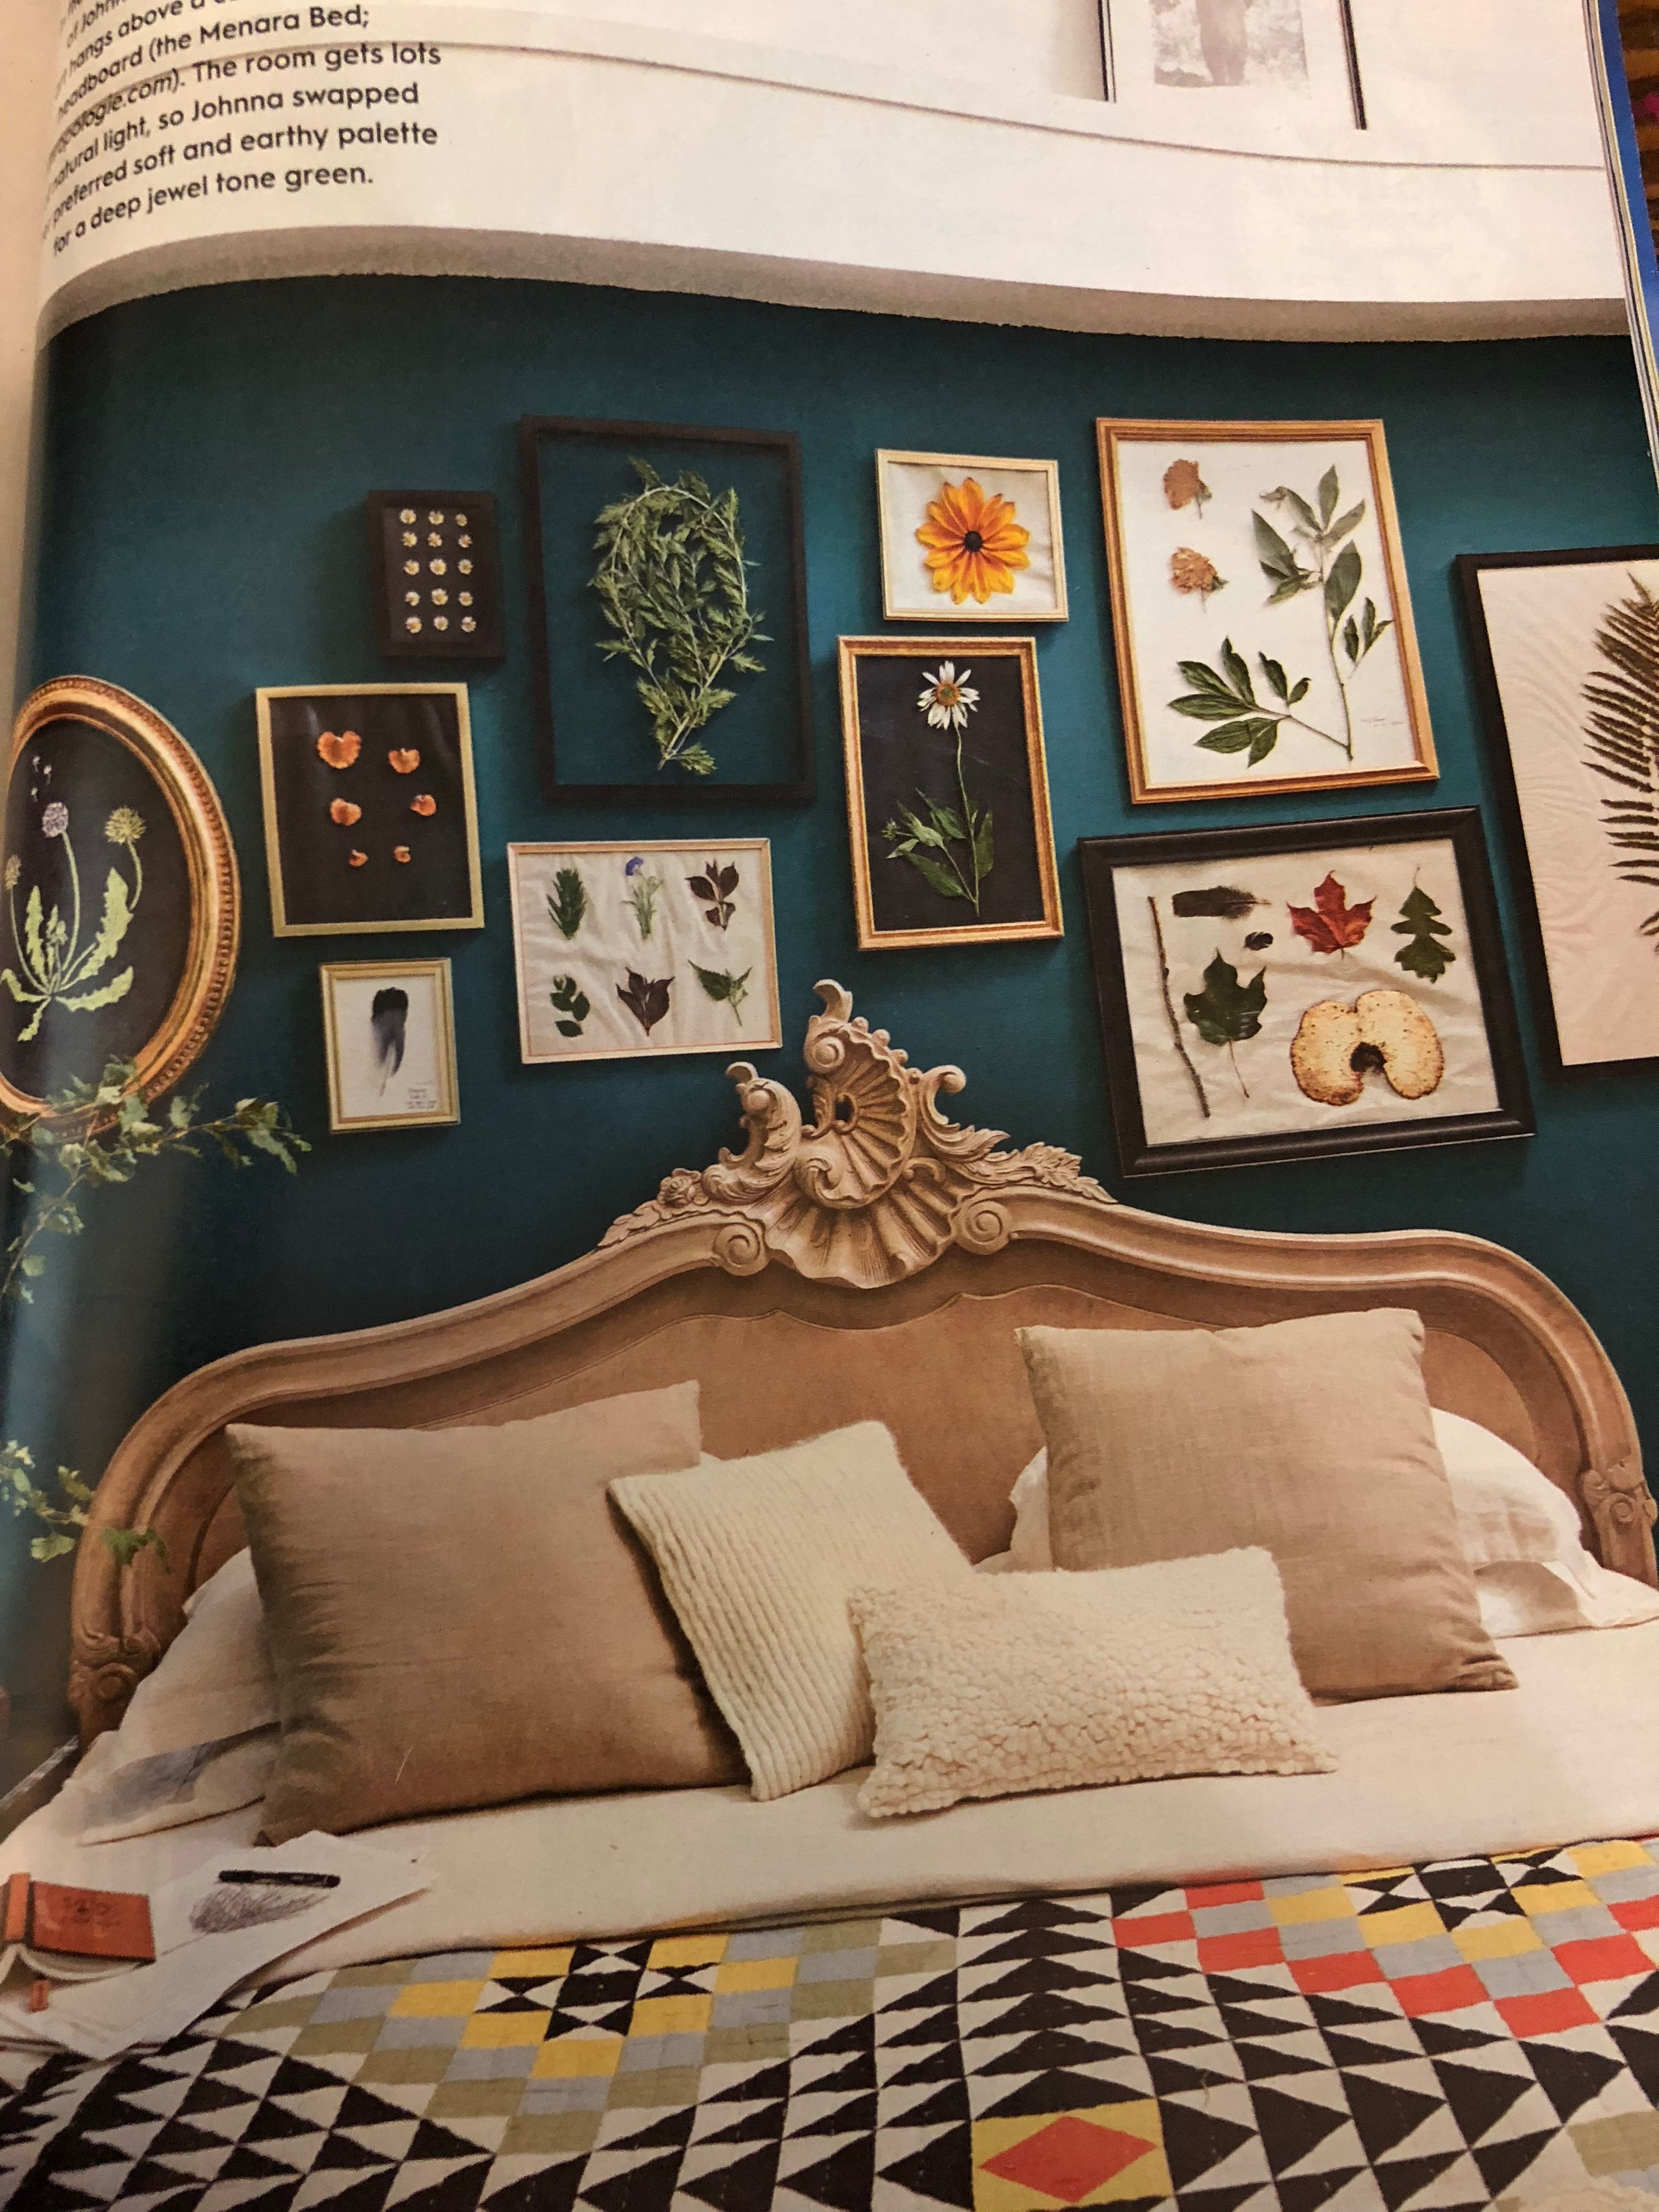 Pin by Stephanie Mulford on Home Teal bedroom walls